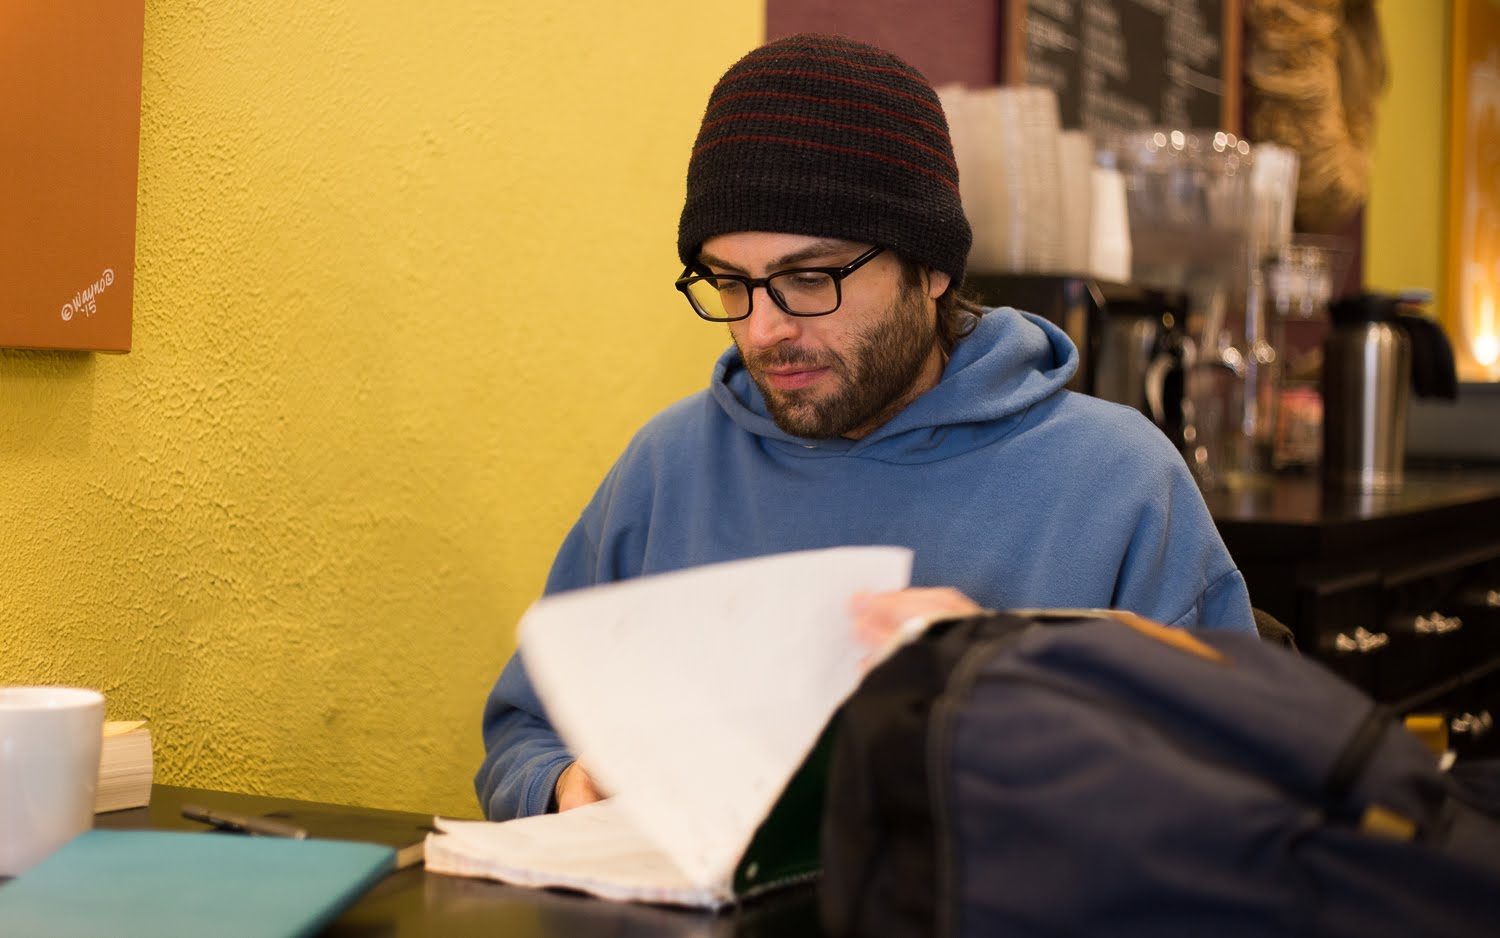 Robb Full, 39, works with a cup of coffee at Uptown Coffee in Mt. Lebanon. (Photo by John Hamilton/PublicSource)